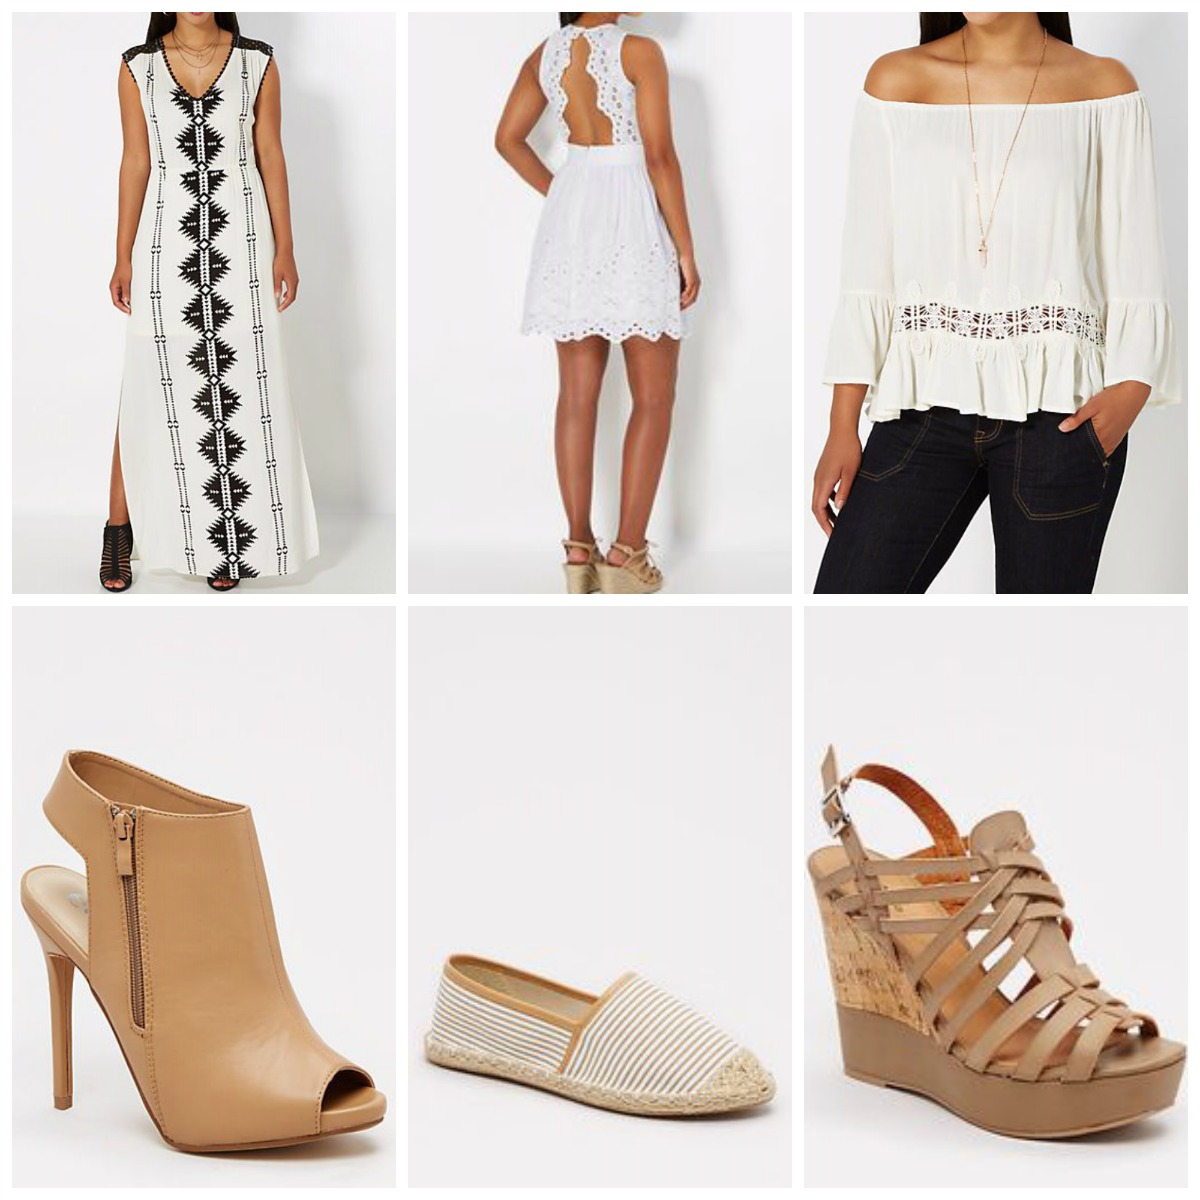 67c4cb5a3b ... I also found some other Spring   Summer trends that are both adorable  and affordable as well. These are all also from Rue21 and under  30 too!